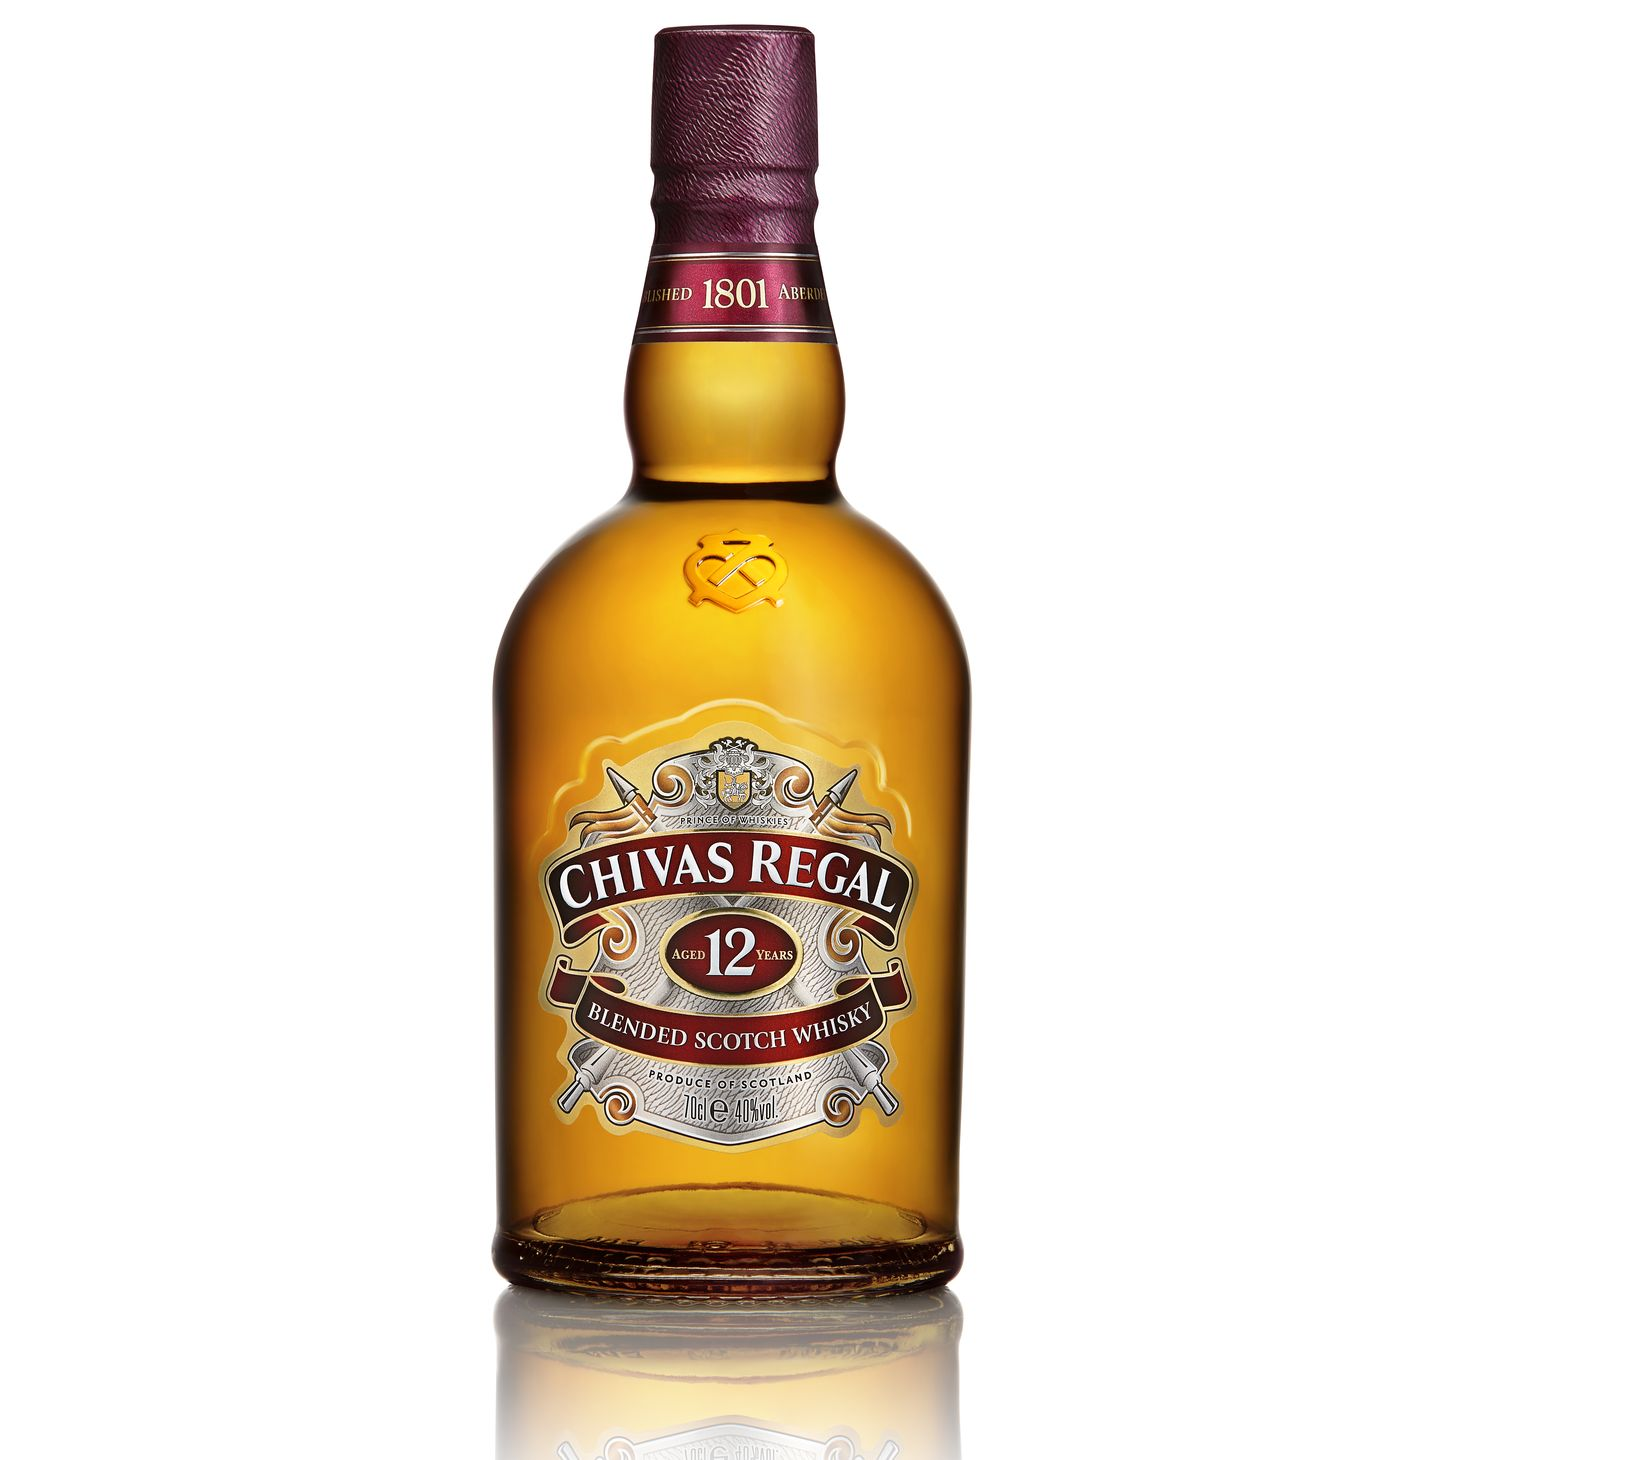 A bottle of a classic Chivas Regal 12